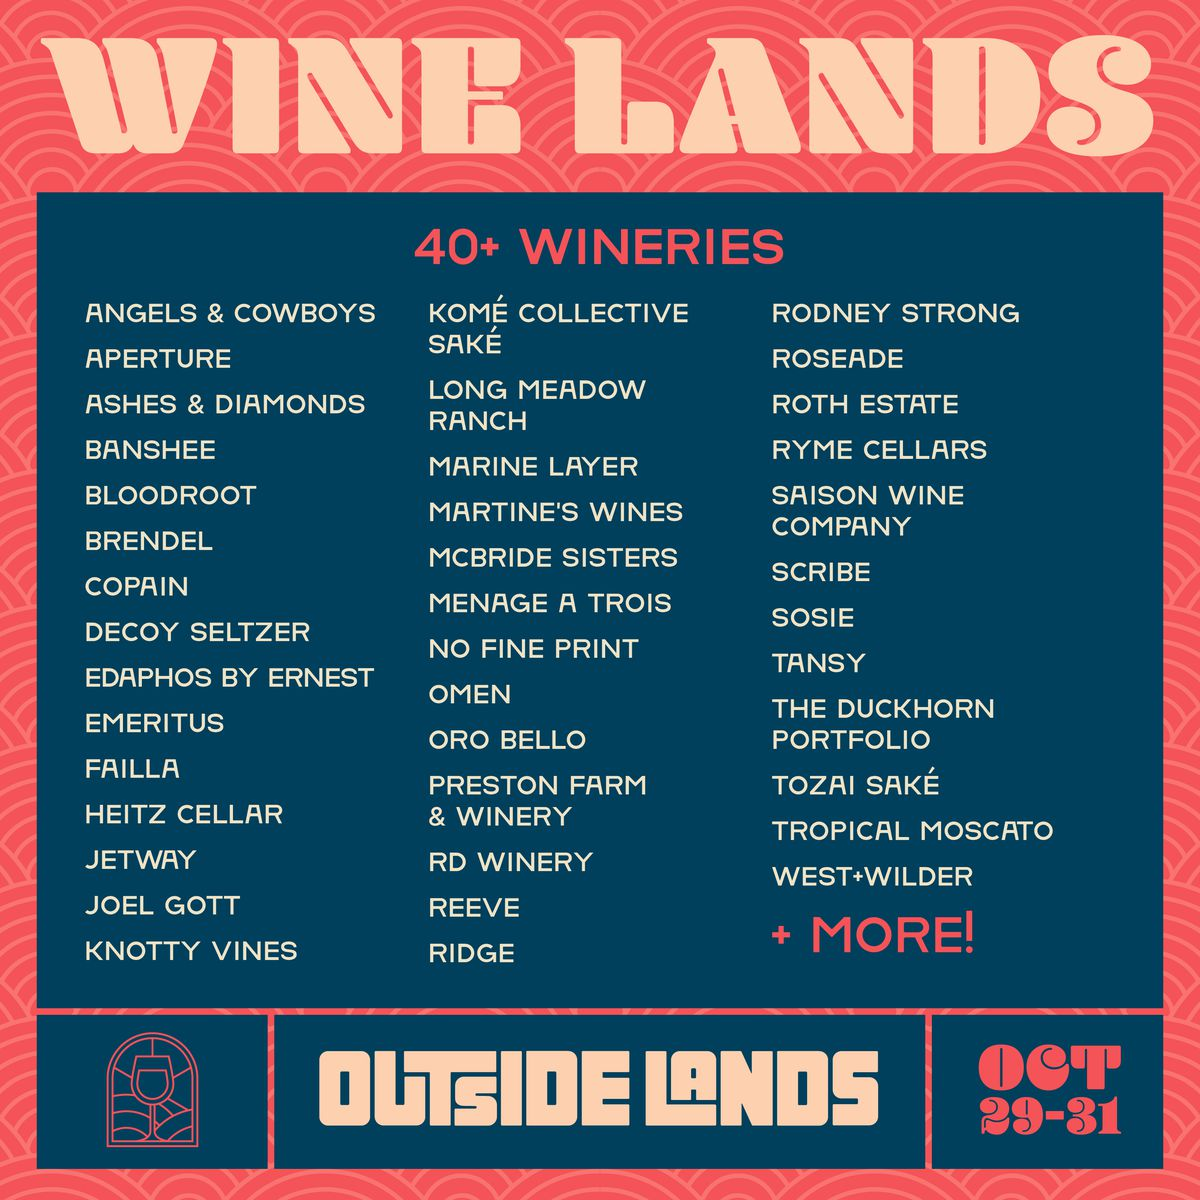 Outside Lands 2021 wine lineup